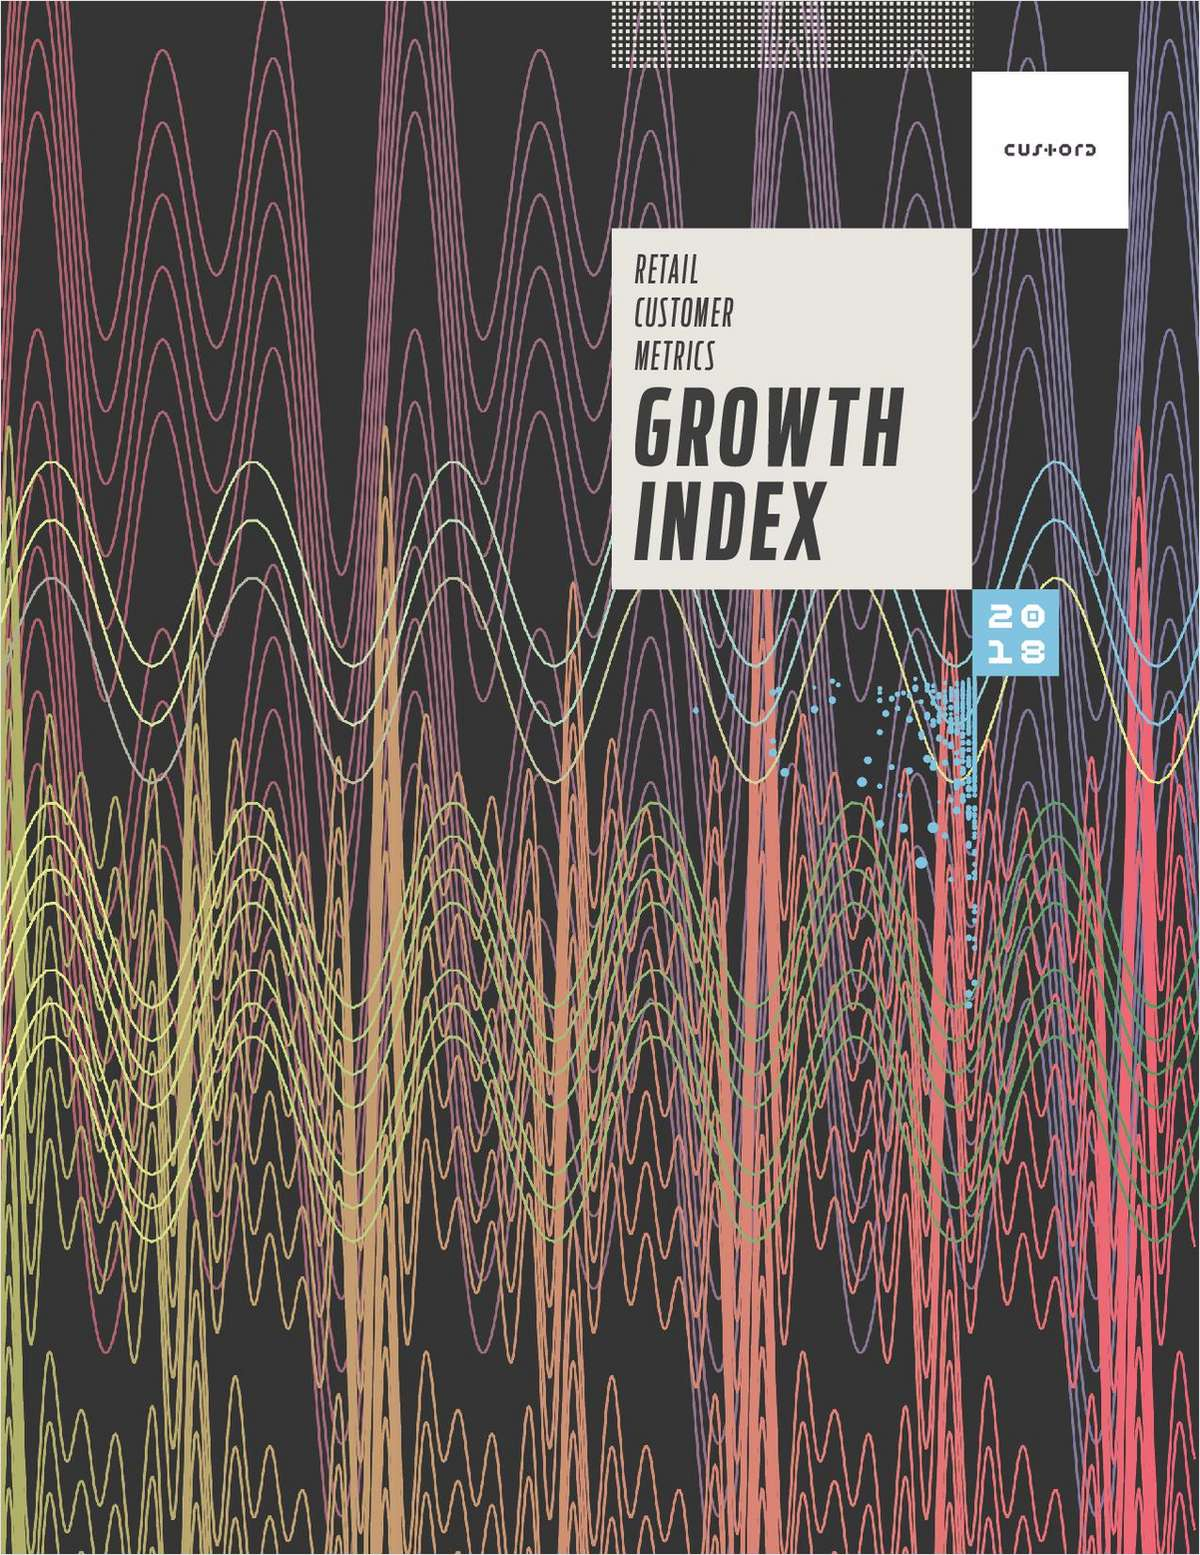 Retail Customer Metrics Growth Index